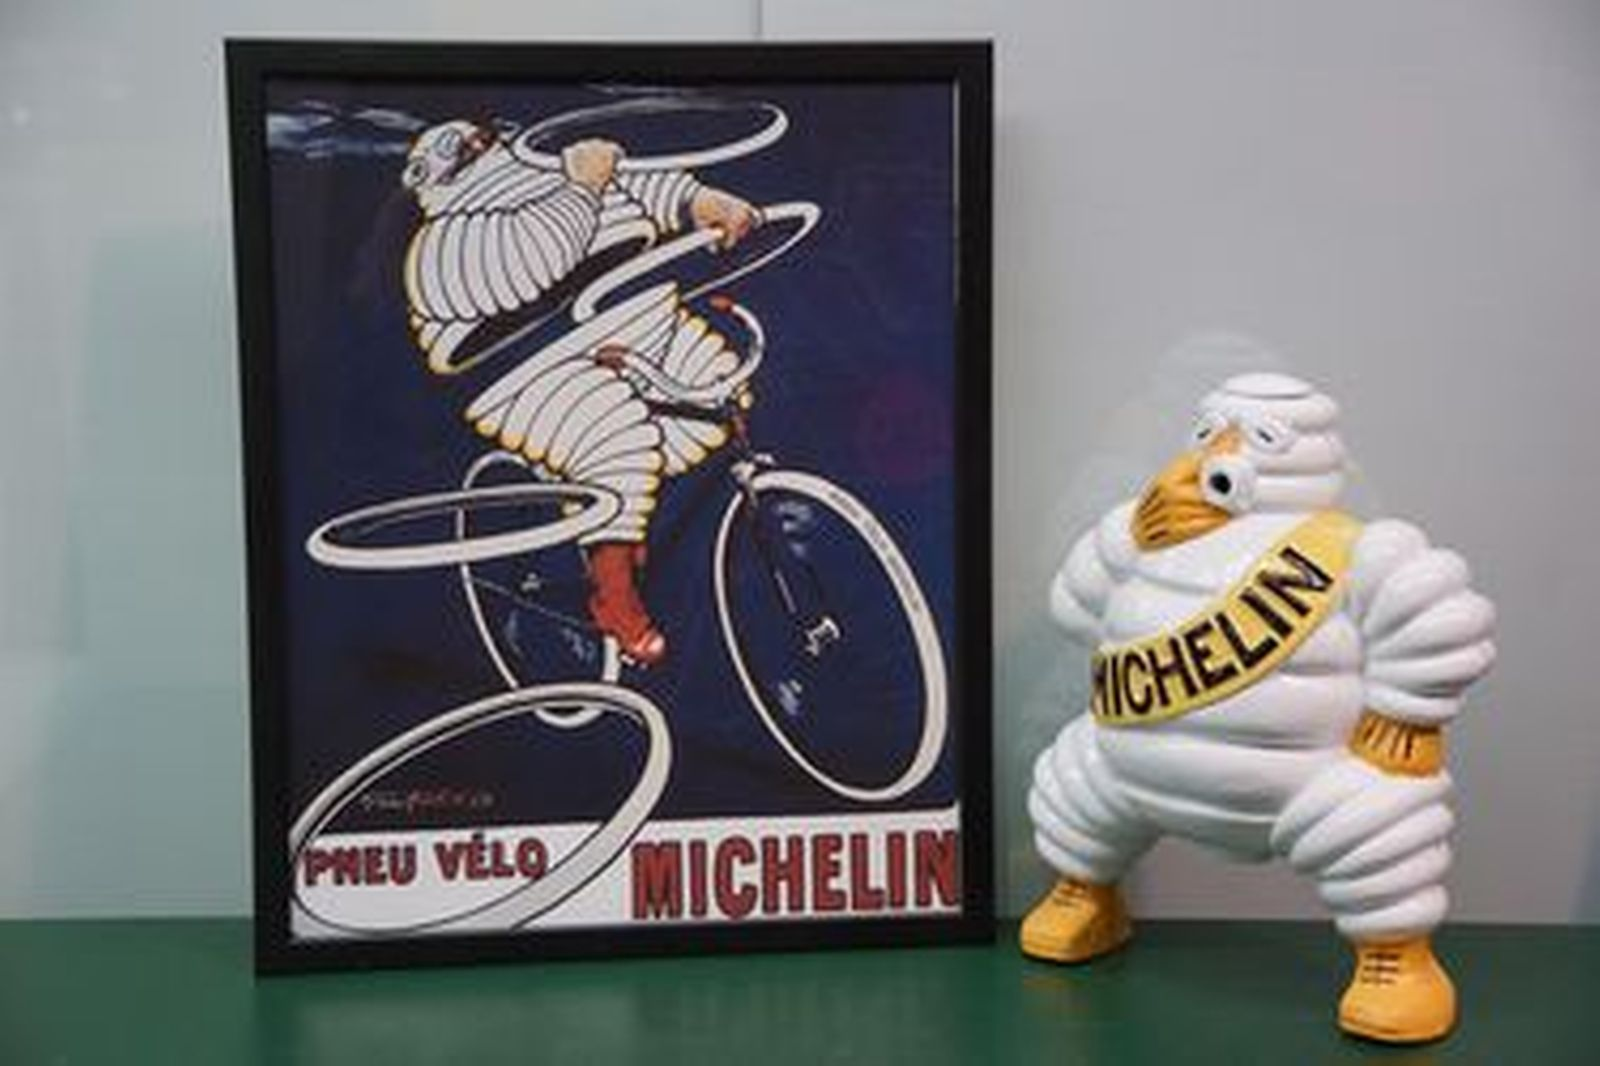 Michelin Man and Print (Reproduction)